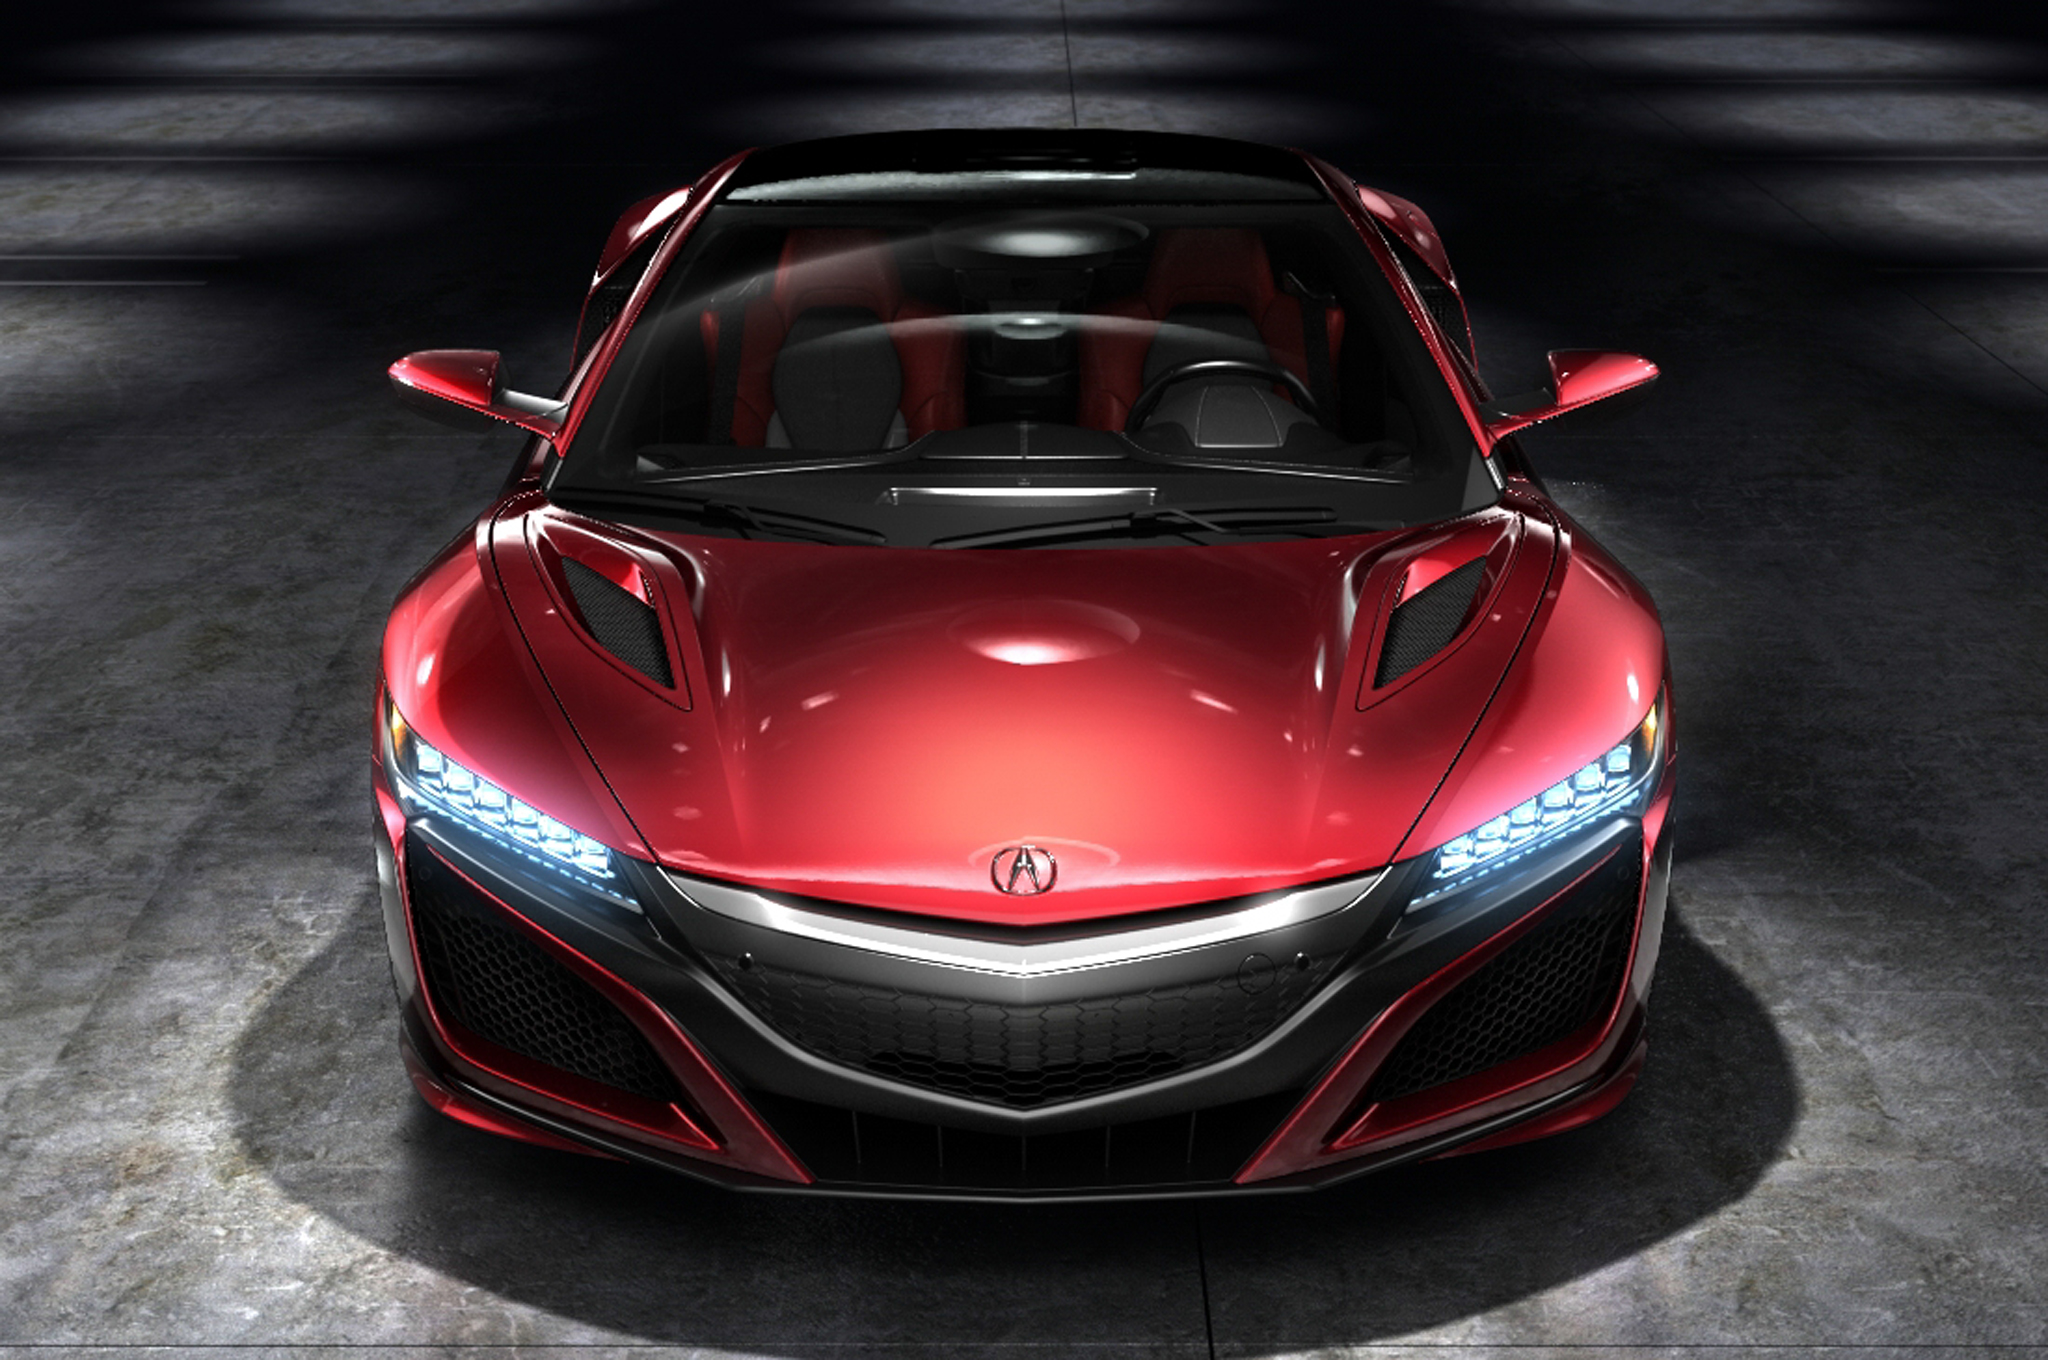 acura logo wallpapers free hd wallpapers desktop image download free